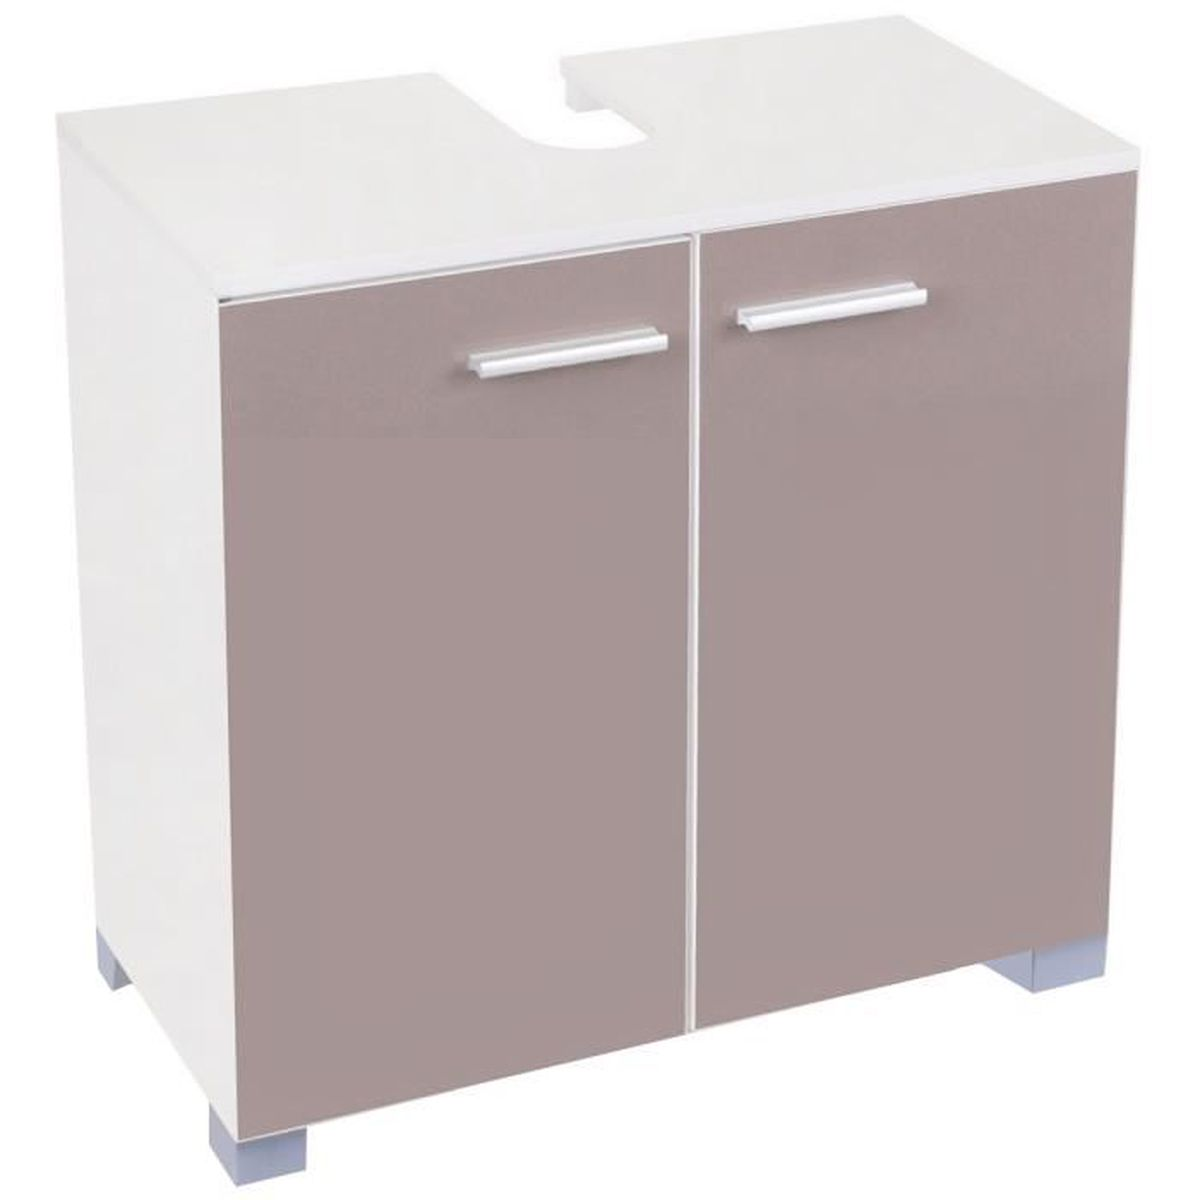 meuble de salle de bain sous vasque evier lavabo avec 2. Black Bedroom Furniture Sets. Home Design Ideas